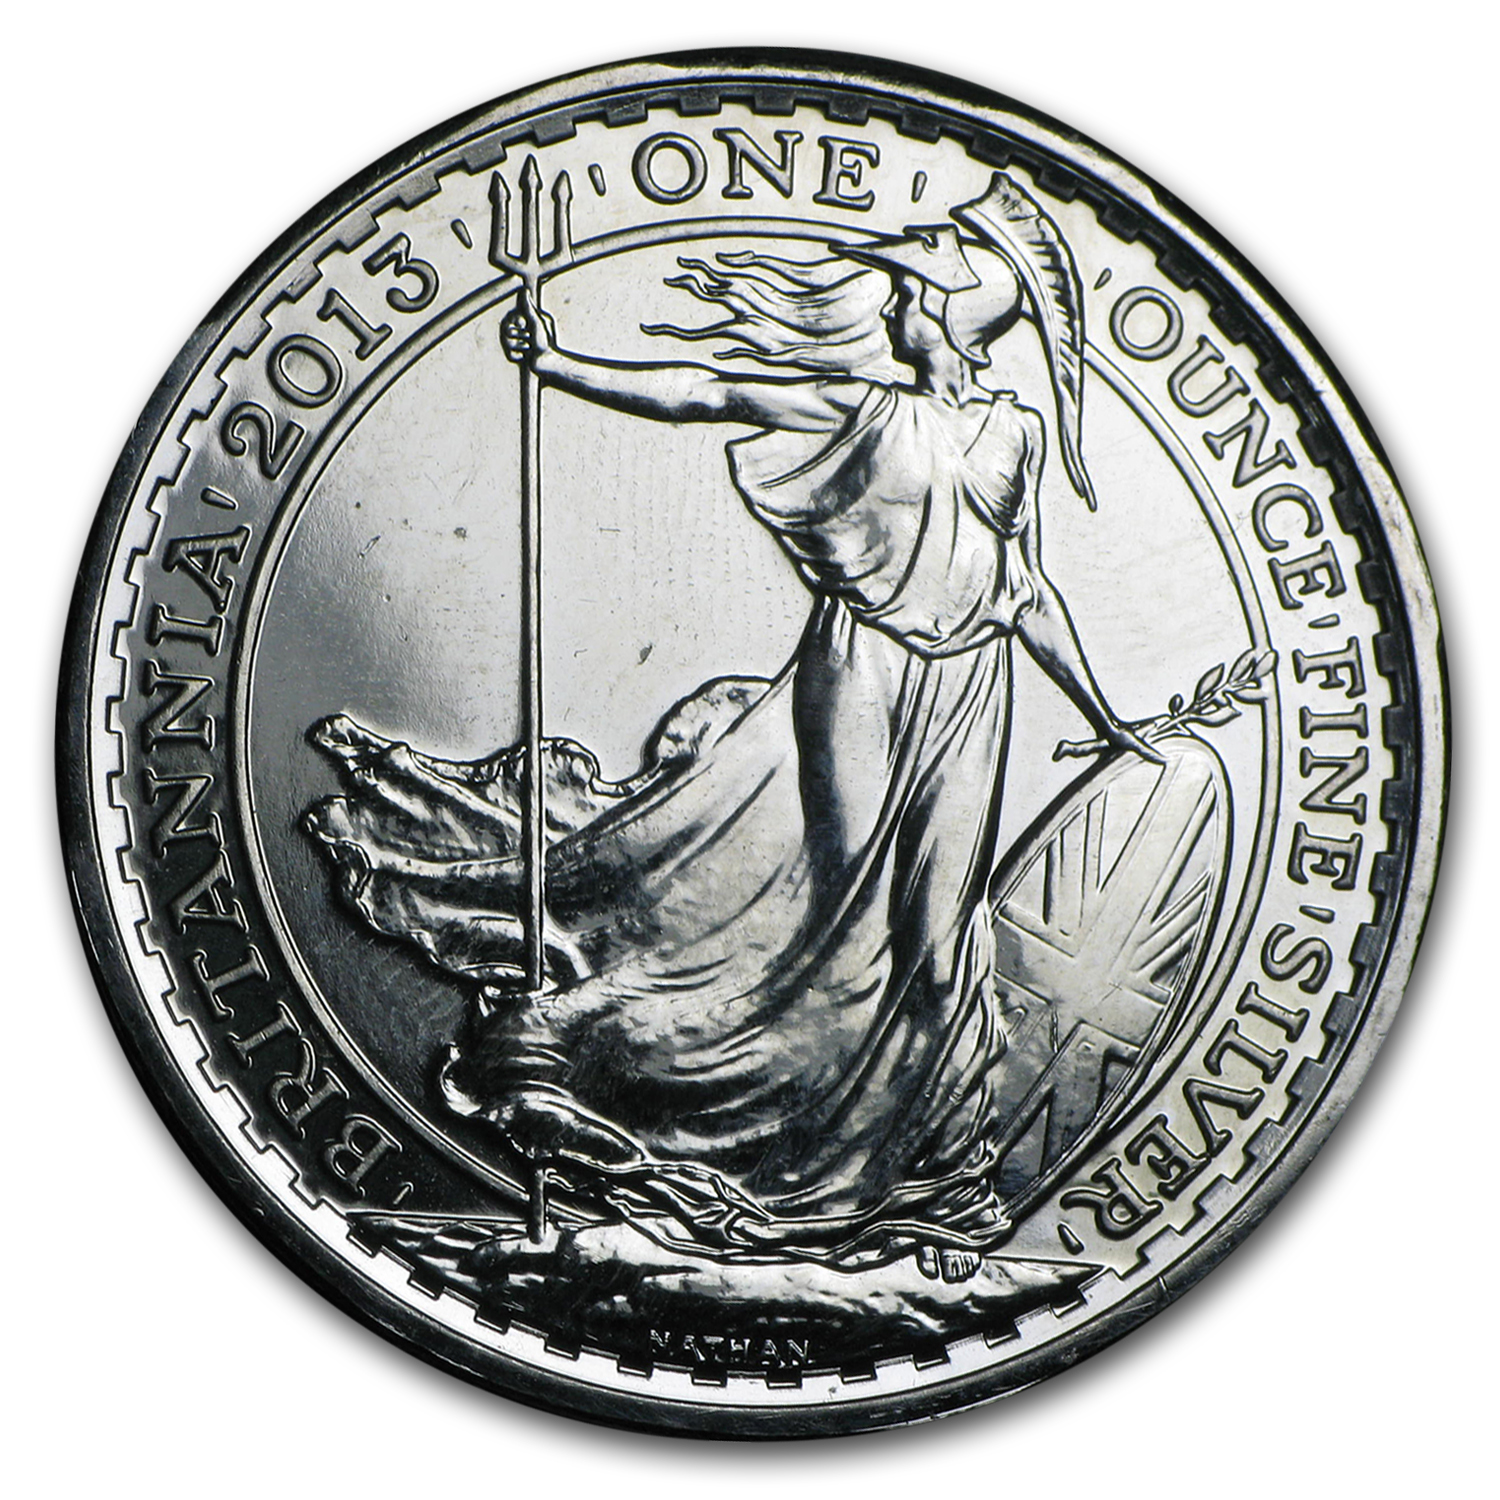 2013 1 oz Lunar Silver Britannia Year of the Snake (Spotted)